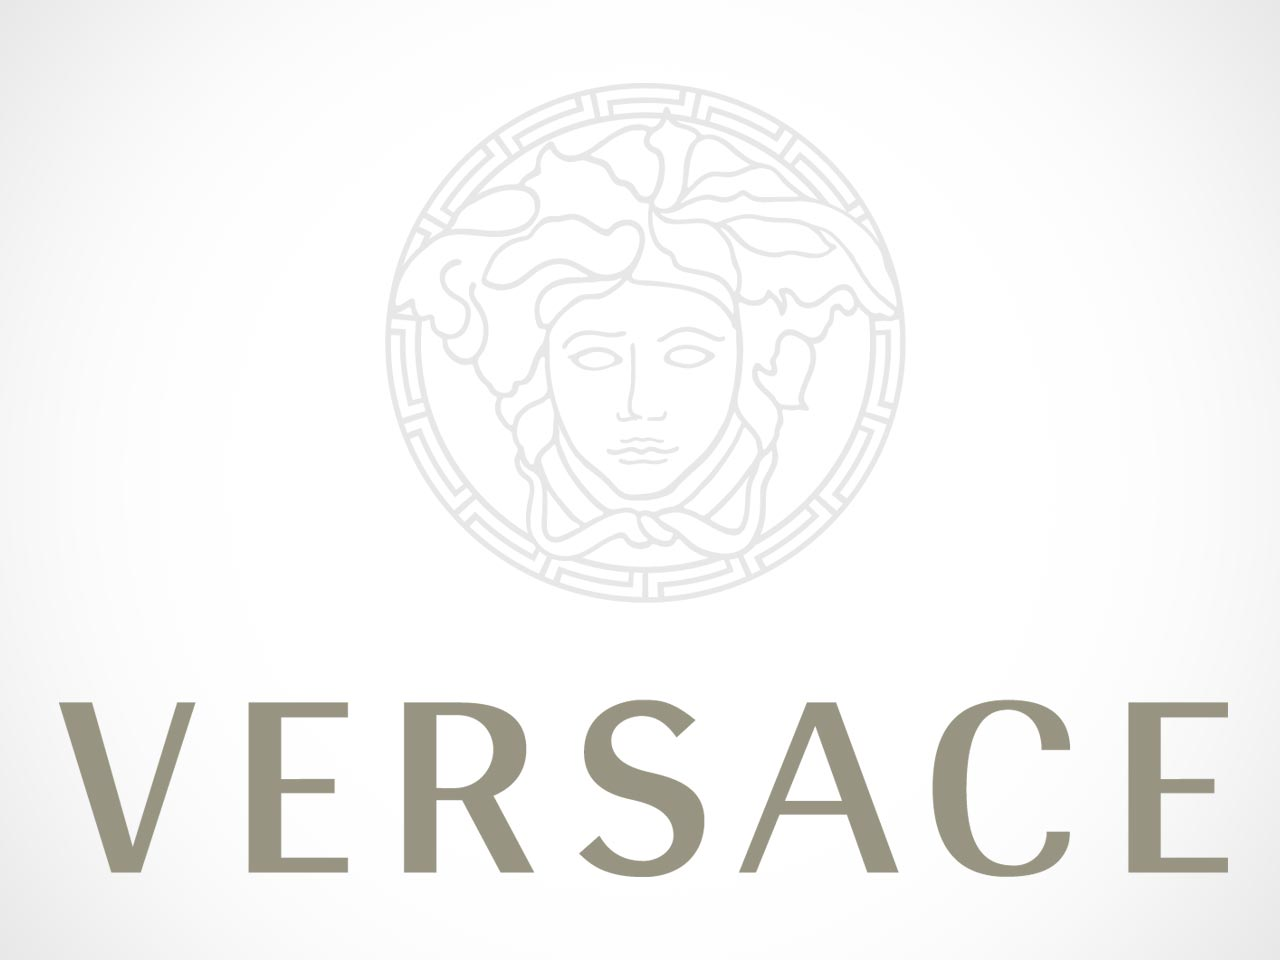 Versace Logo on white background.